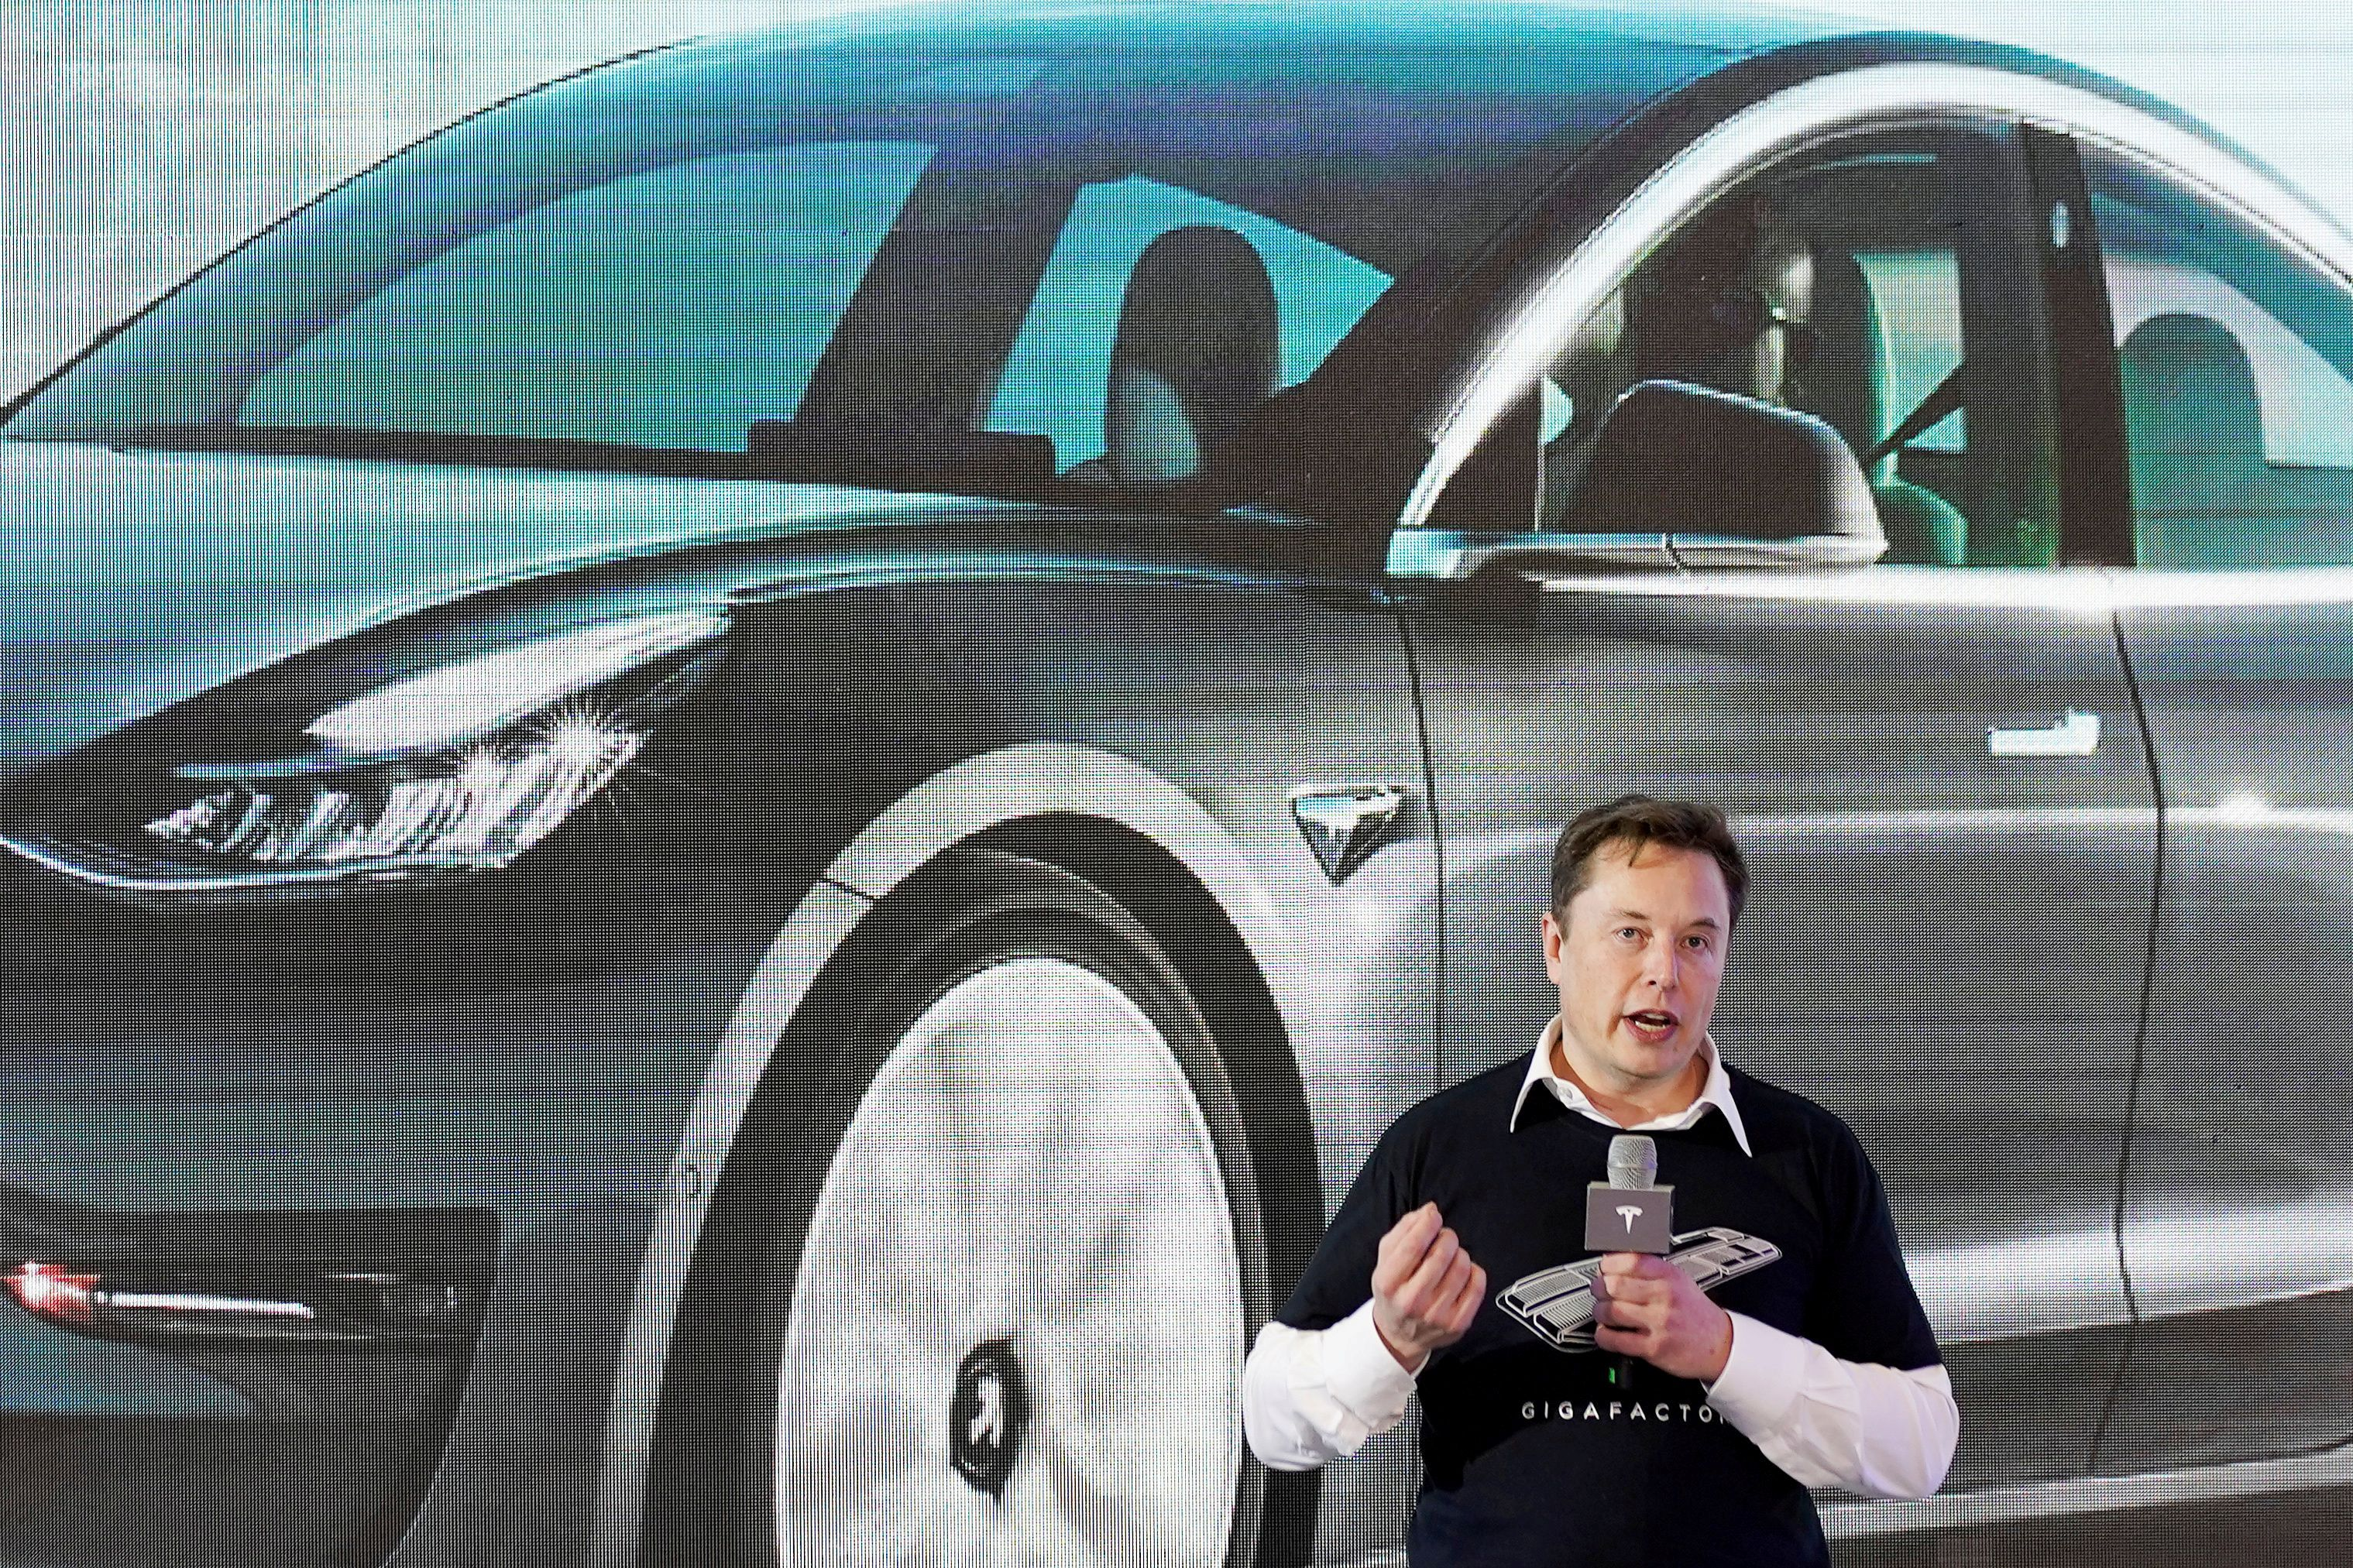 Tesla Inc CEO Elon Musk speaks onstage during a delivery event for Tesla China-made Model 3 cars at its factory in Shanghai, China January 7, 2020. REUTERS/Aly Song/File Photo